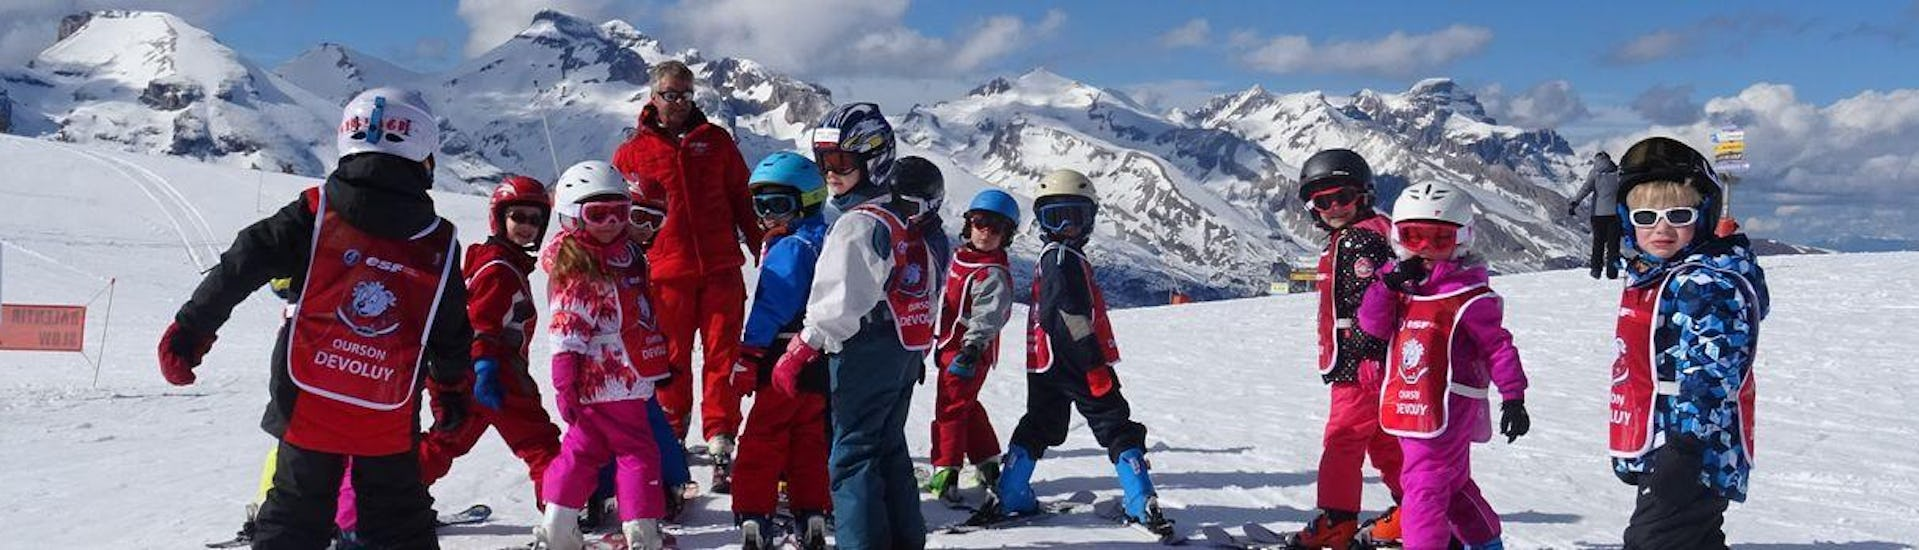 Kids are standing at the top of the slope ready to start their Kids Ski Lessons (6-12 years) - February - Morning - Advanced with the ski school ESF du Dévoluy.